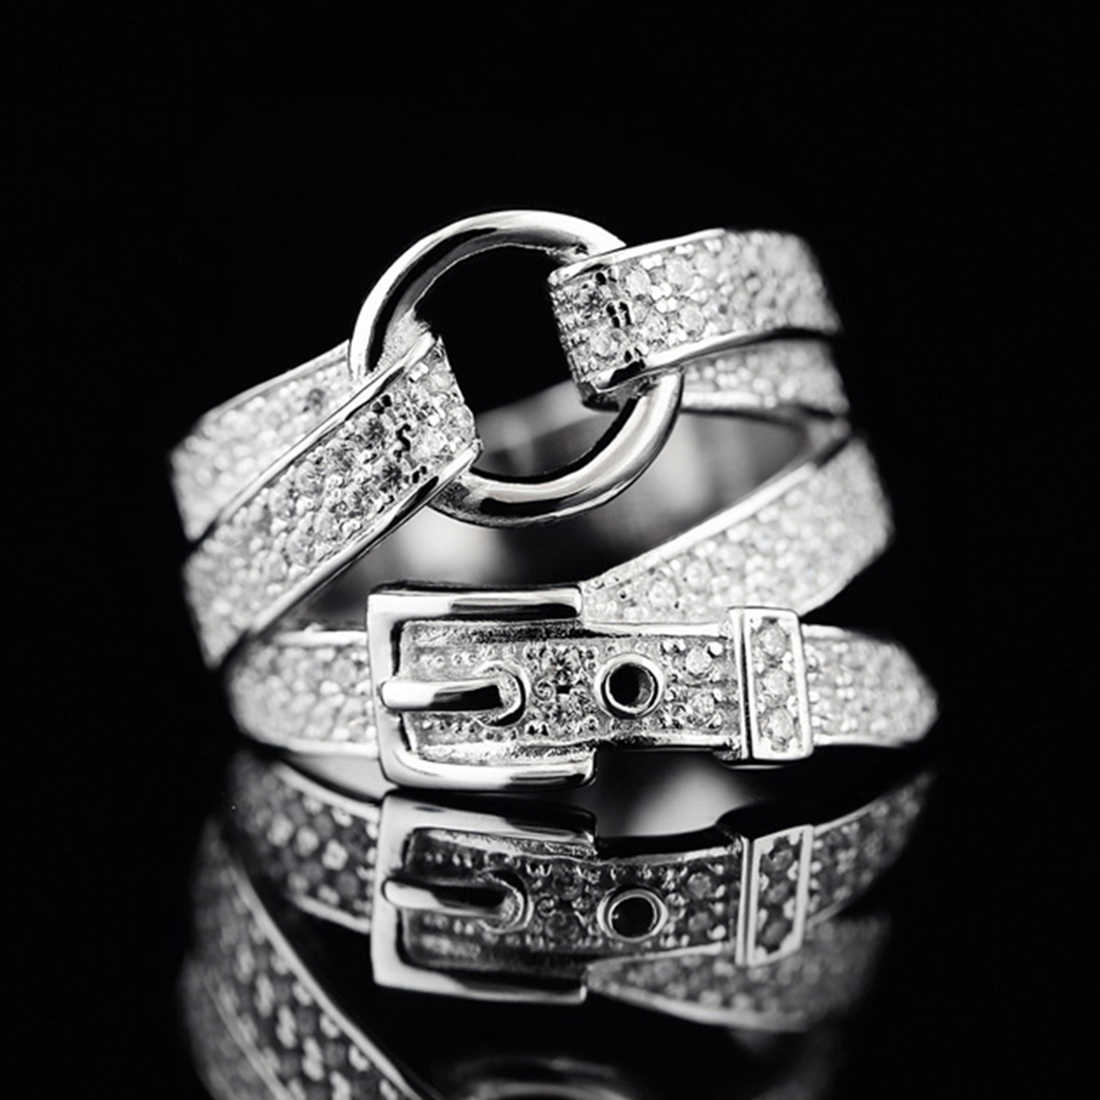 Adjustable Silver Belt Shape Band Ring Crystal Zircon Stone Fashion Jewelry for Women Party Valentine's Day Gift